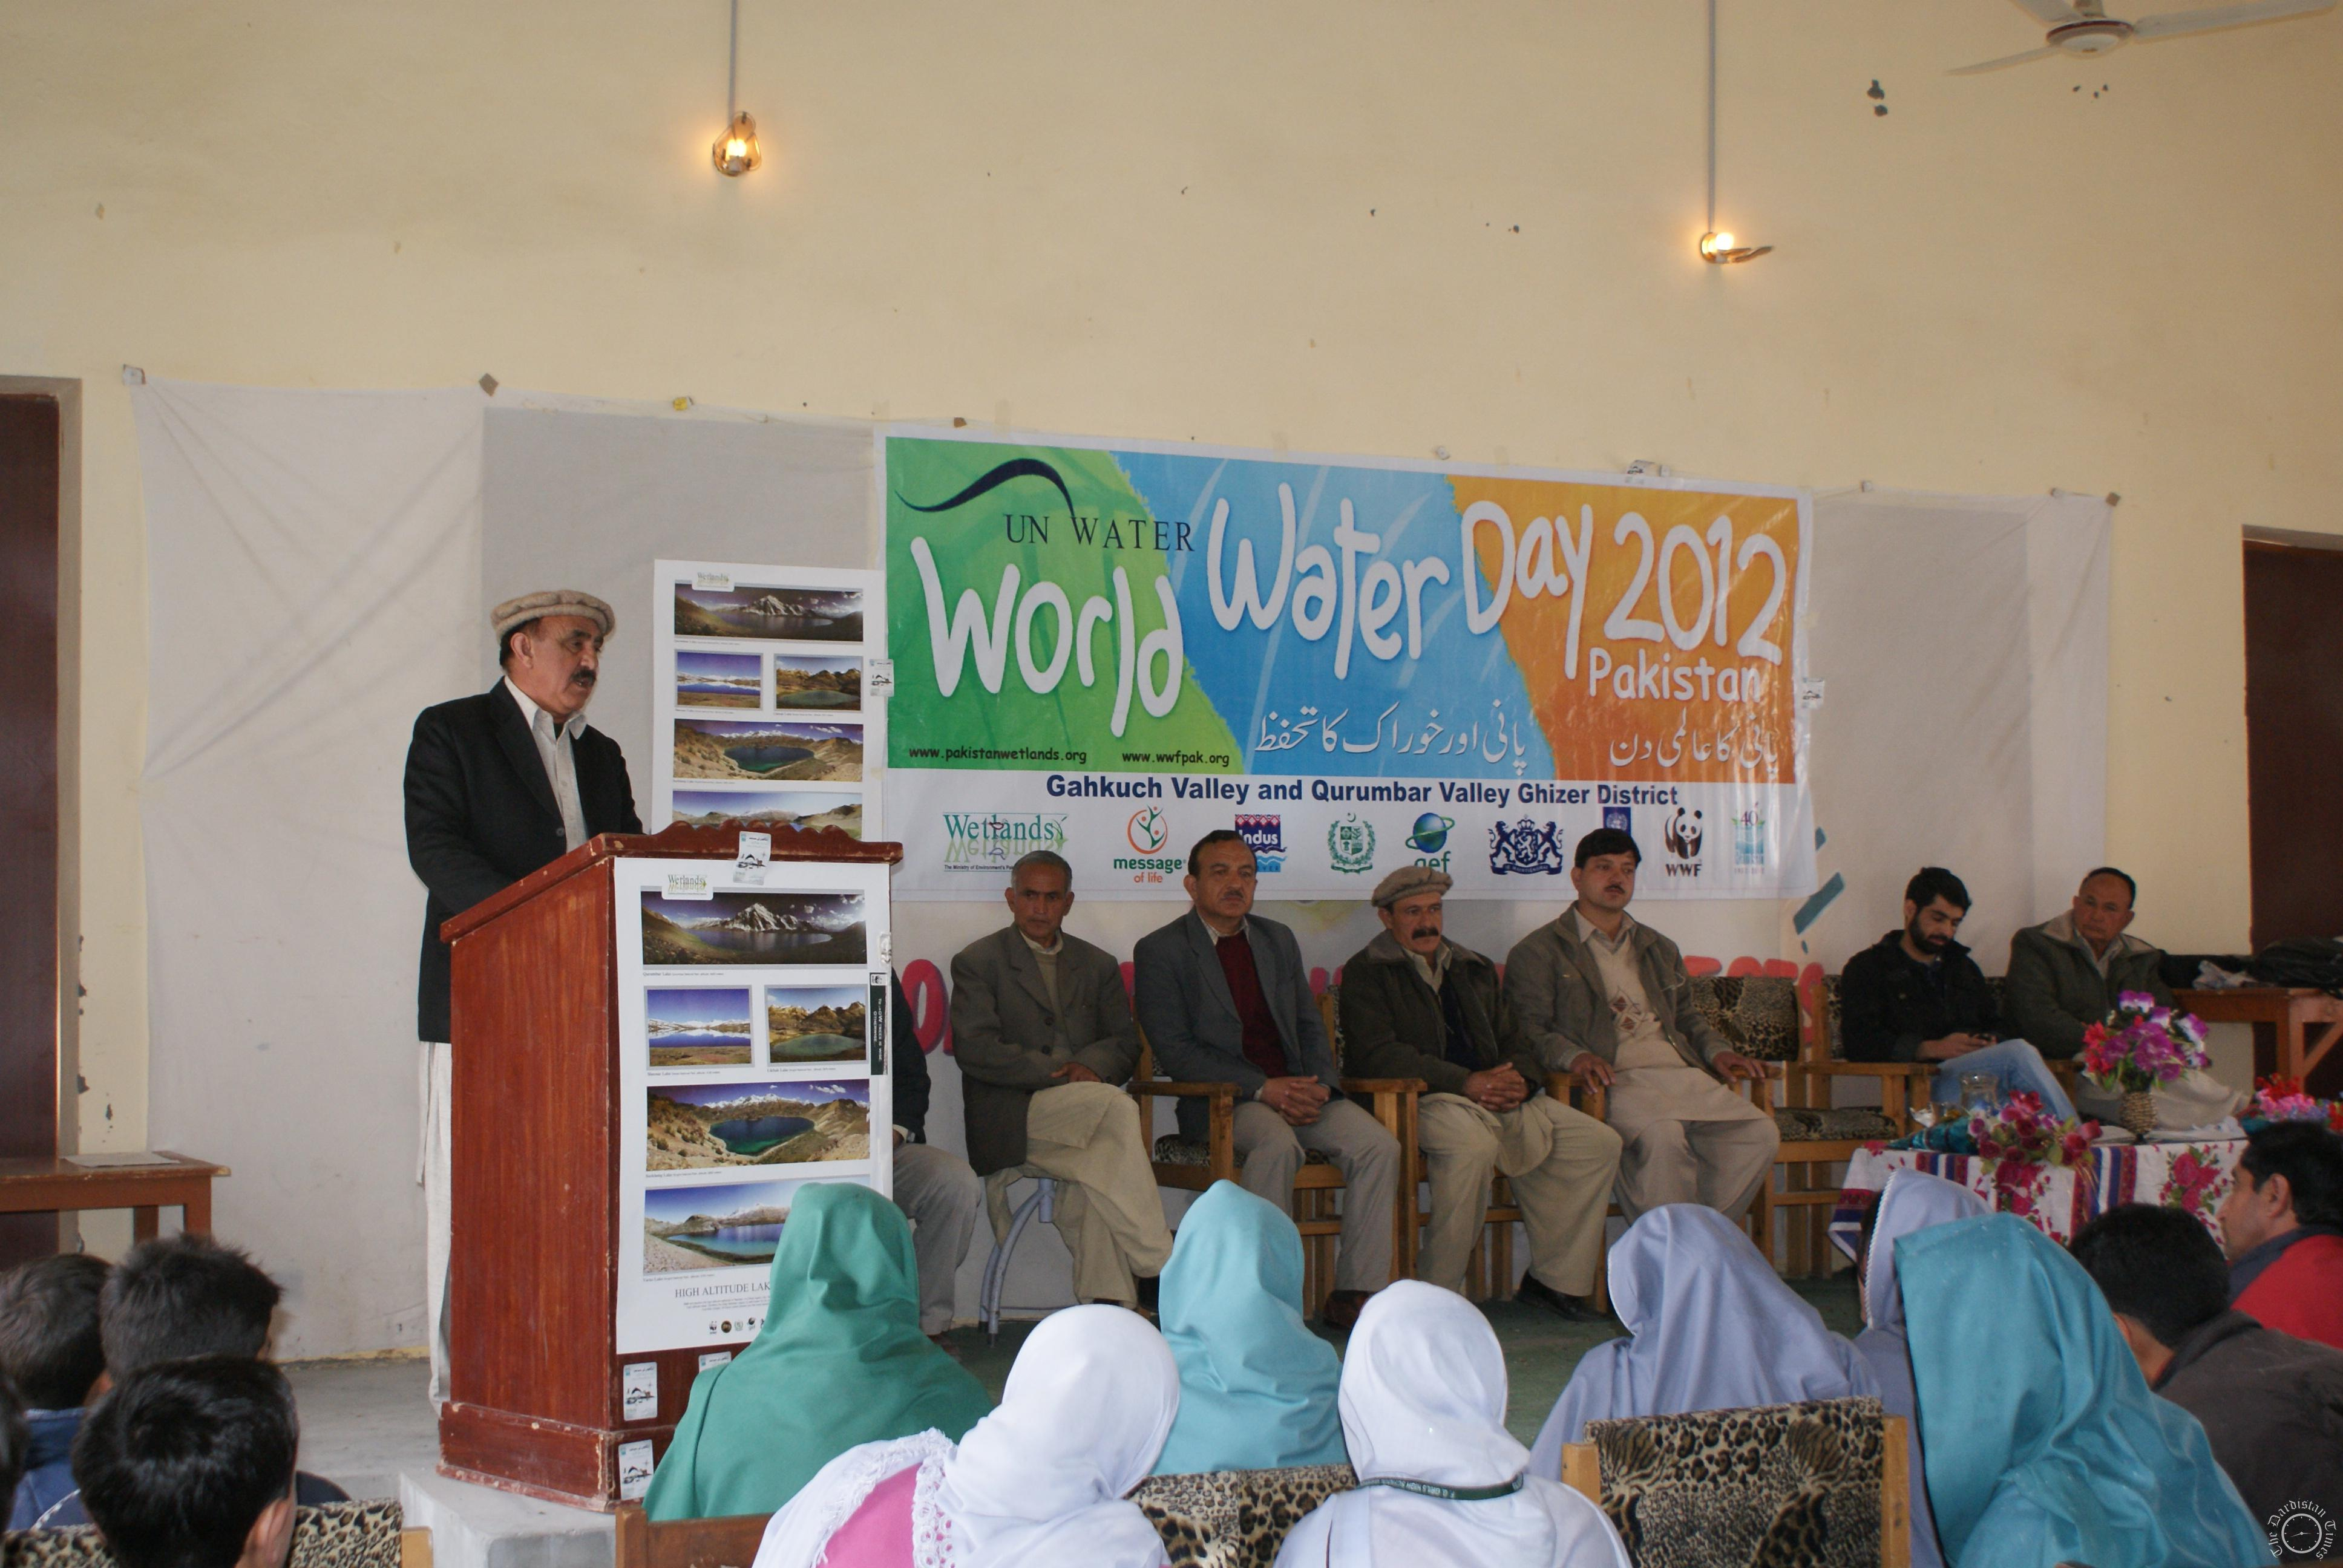 World Water Day 2012 Celebration in Gahkuch Ghizer